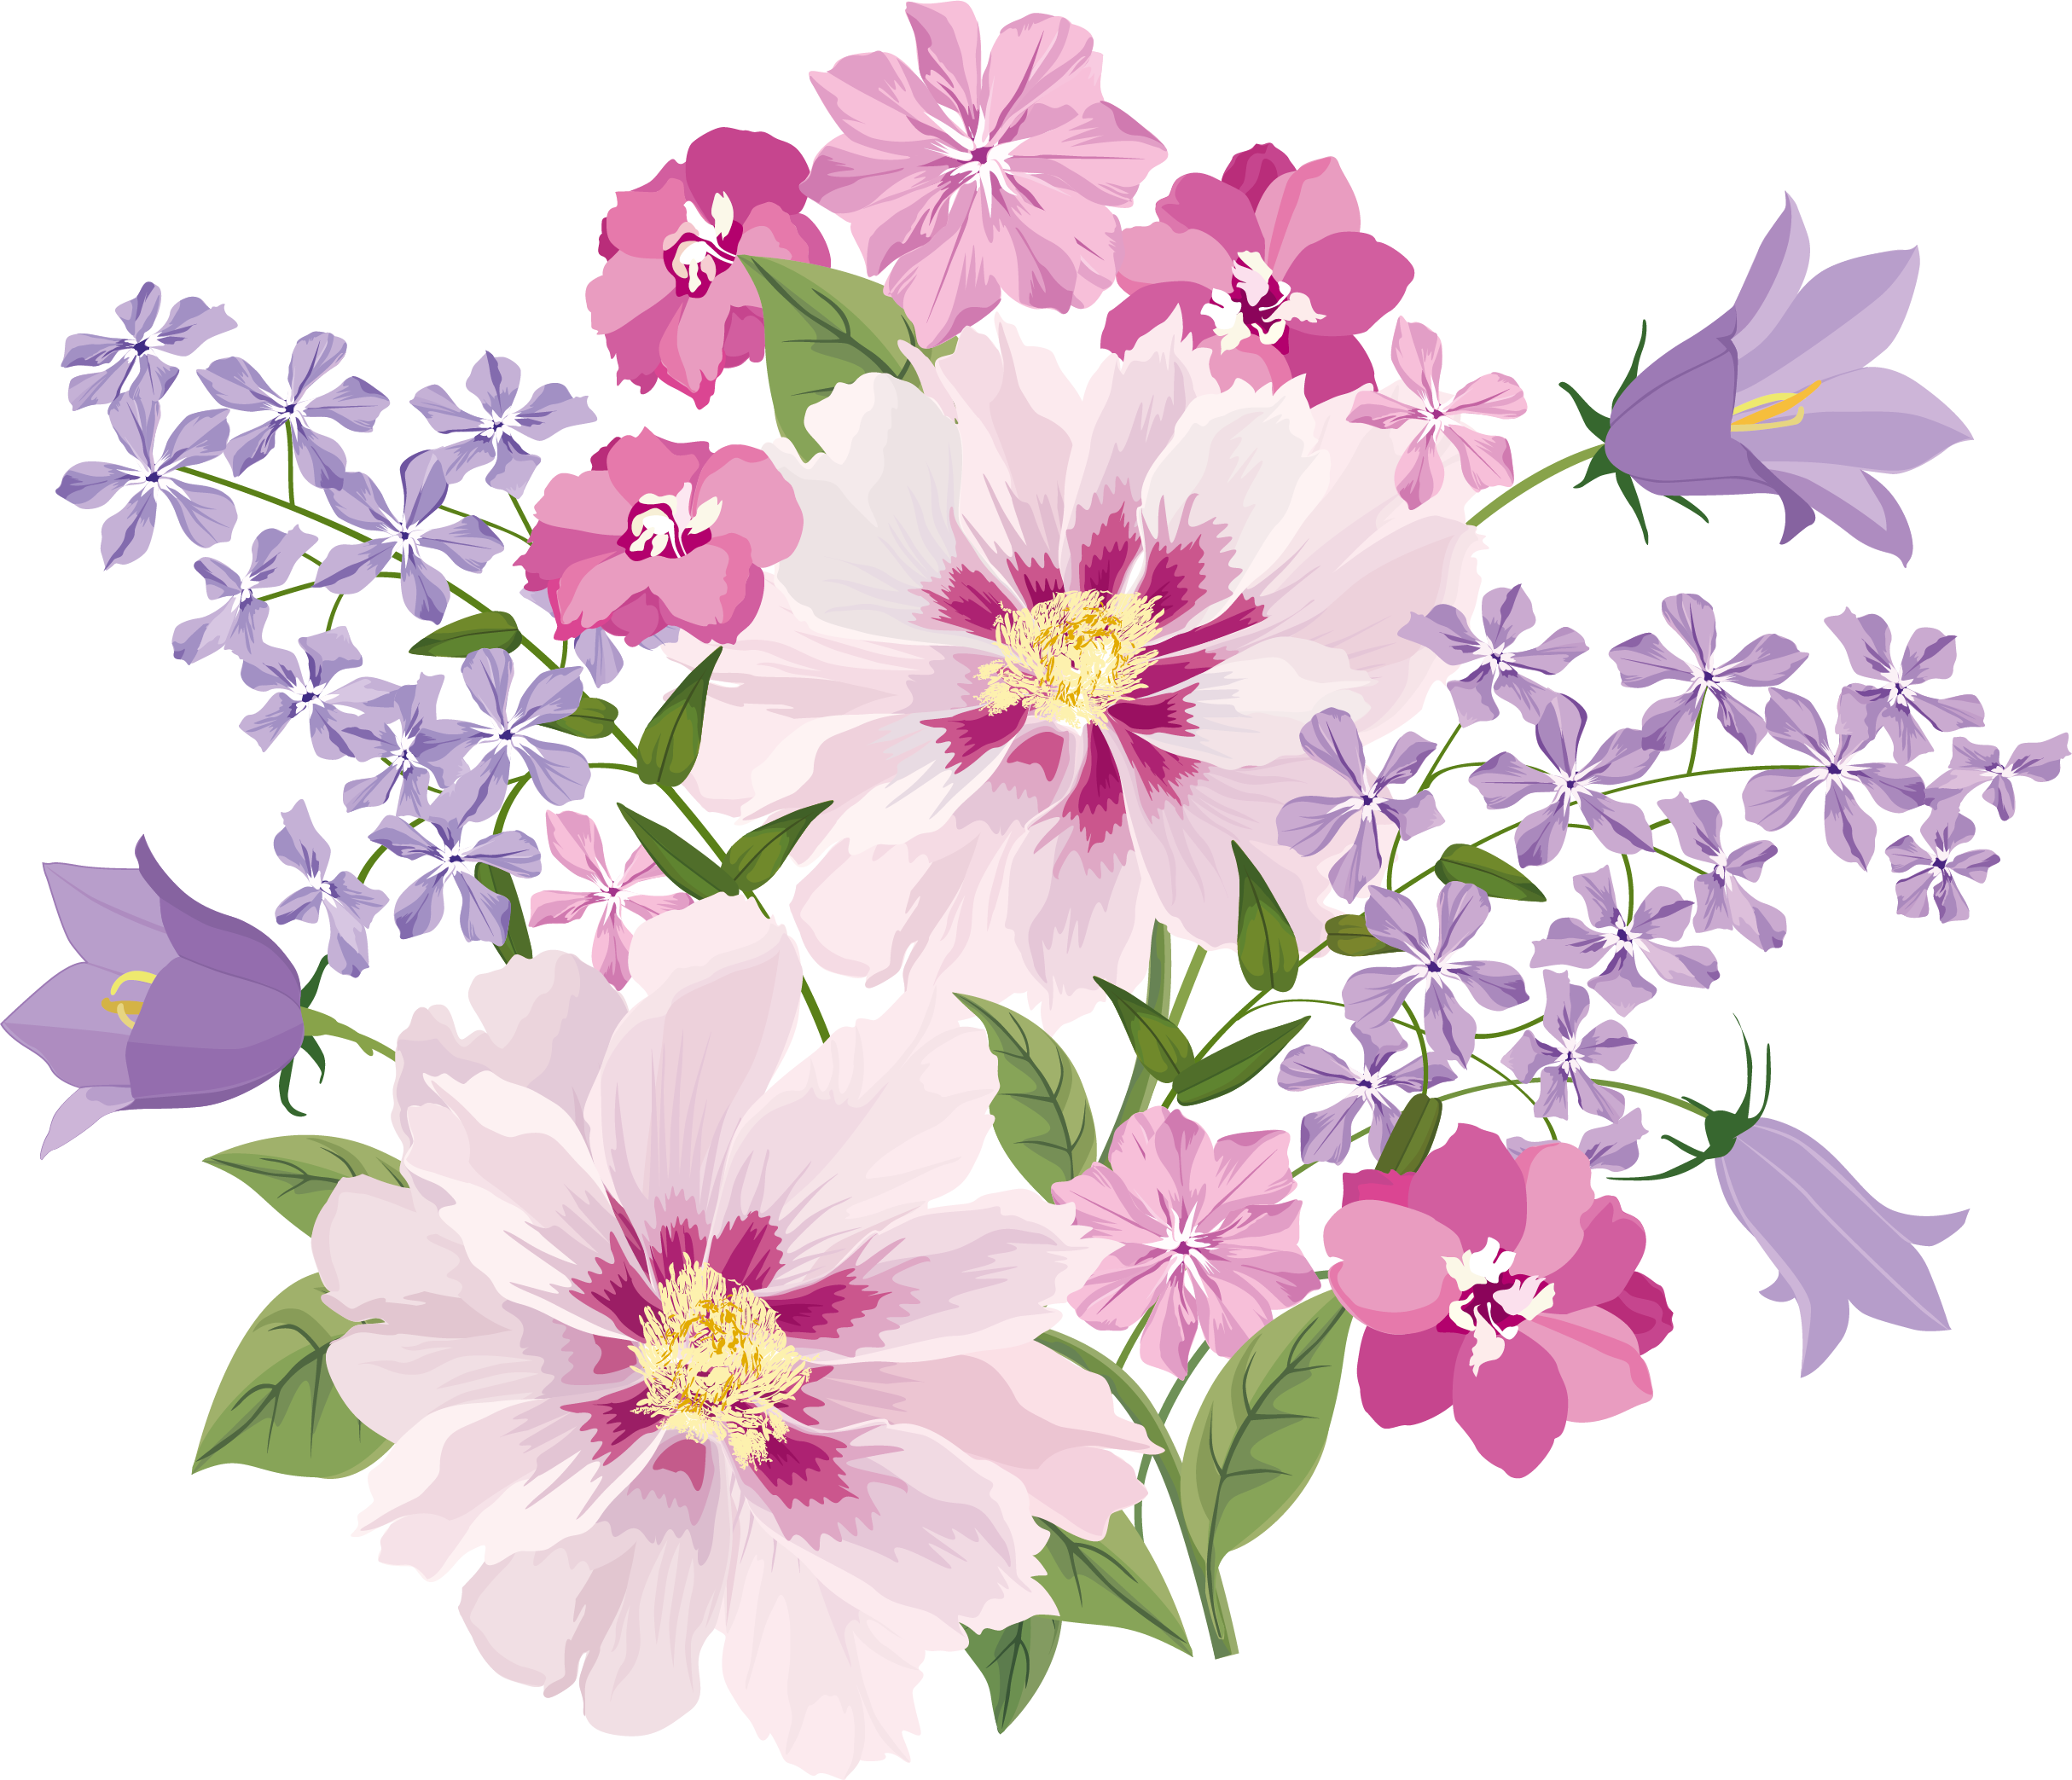 Flower blooming clipart png library library freedesignfile.com / Flowers | Decoupage Flowers | Pinterest ... png library library